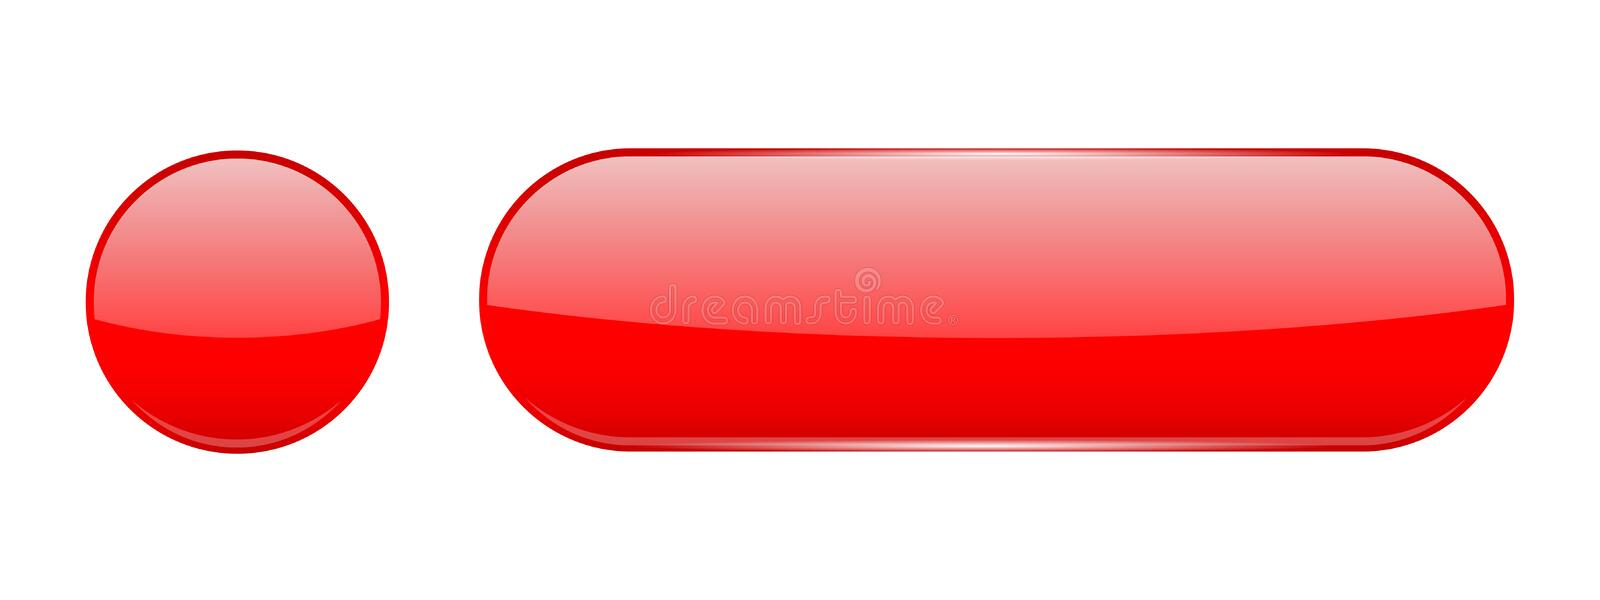 Red glass buttons. Web 3d shiny icons. Vector illustration isolated on white background stock illustration